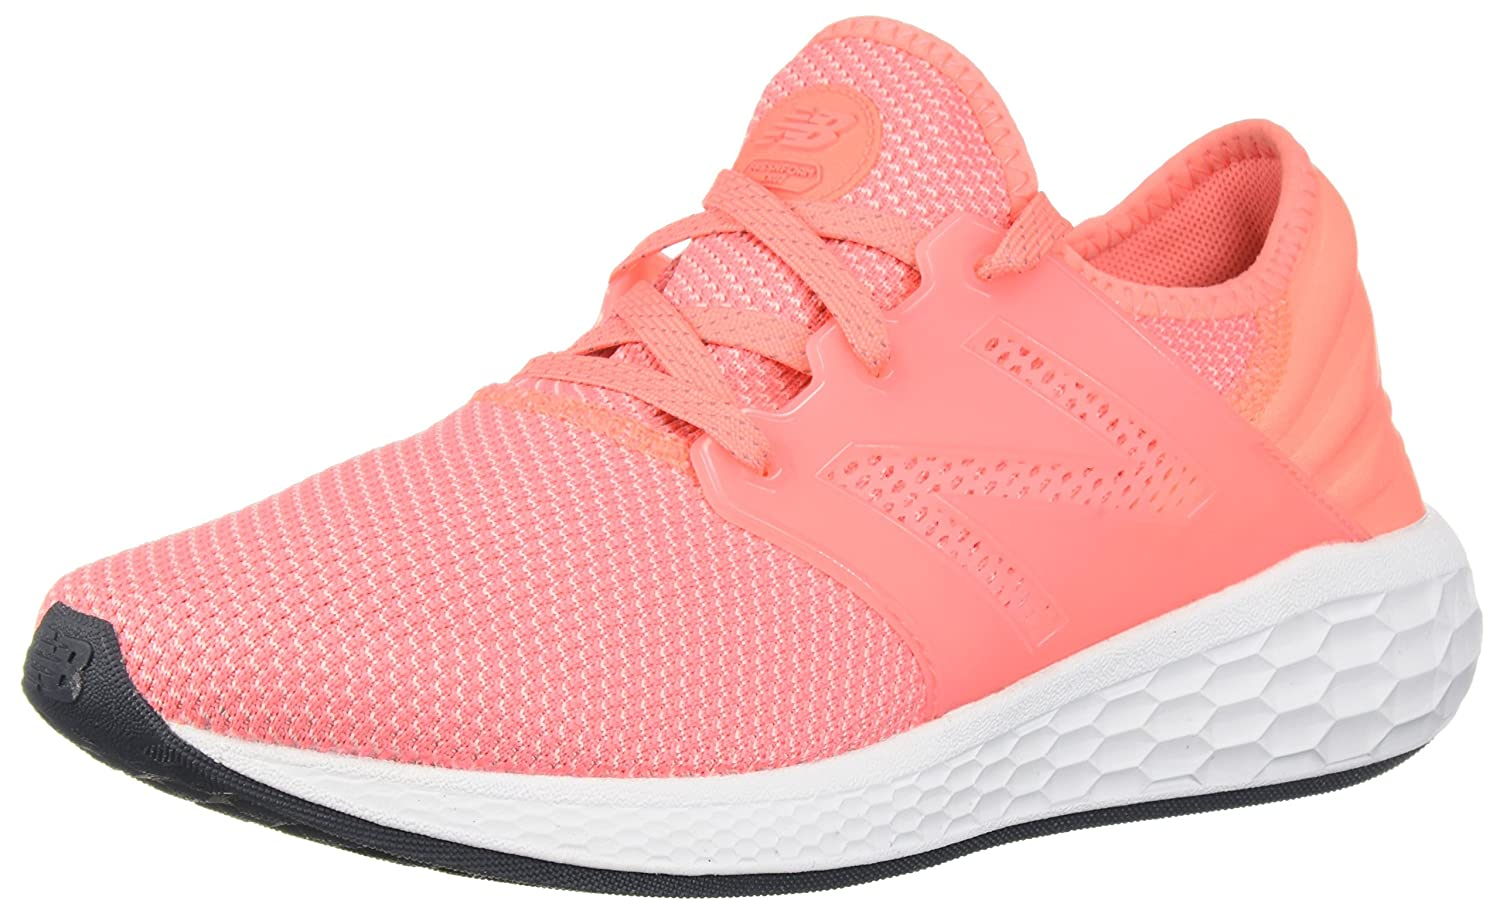 New Balance Women's Cruz V1 Fresh Foam Running Shoe B0751GPX82 12 D US|Fiji